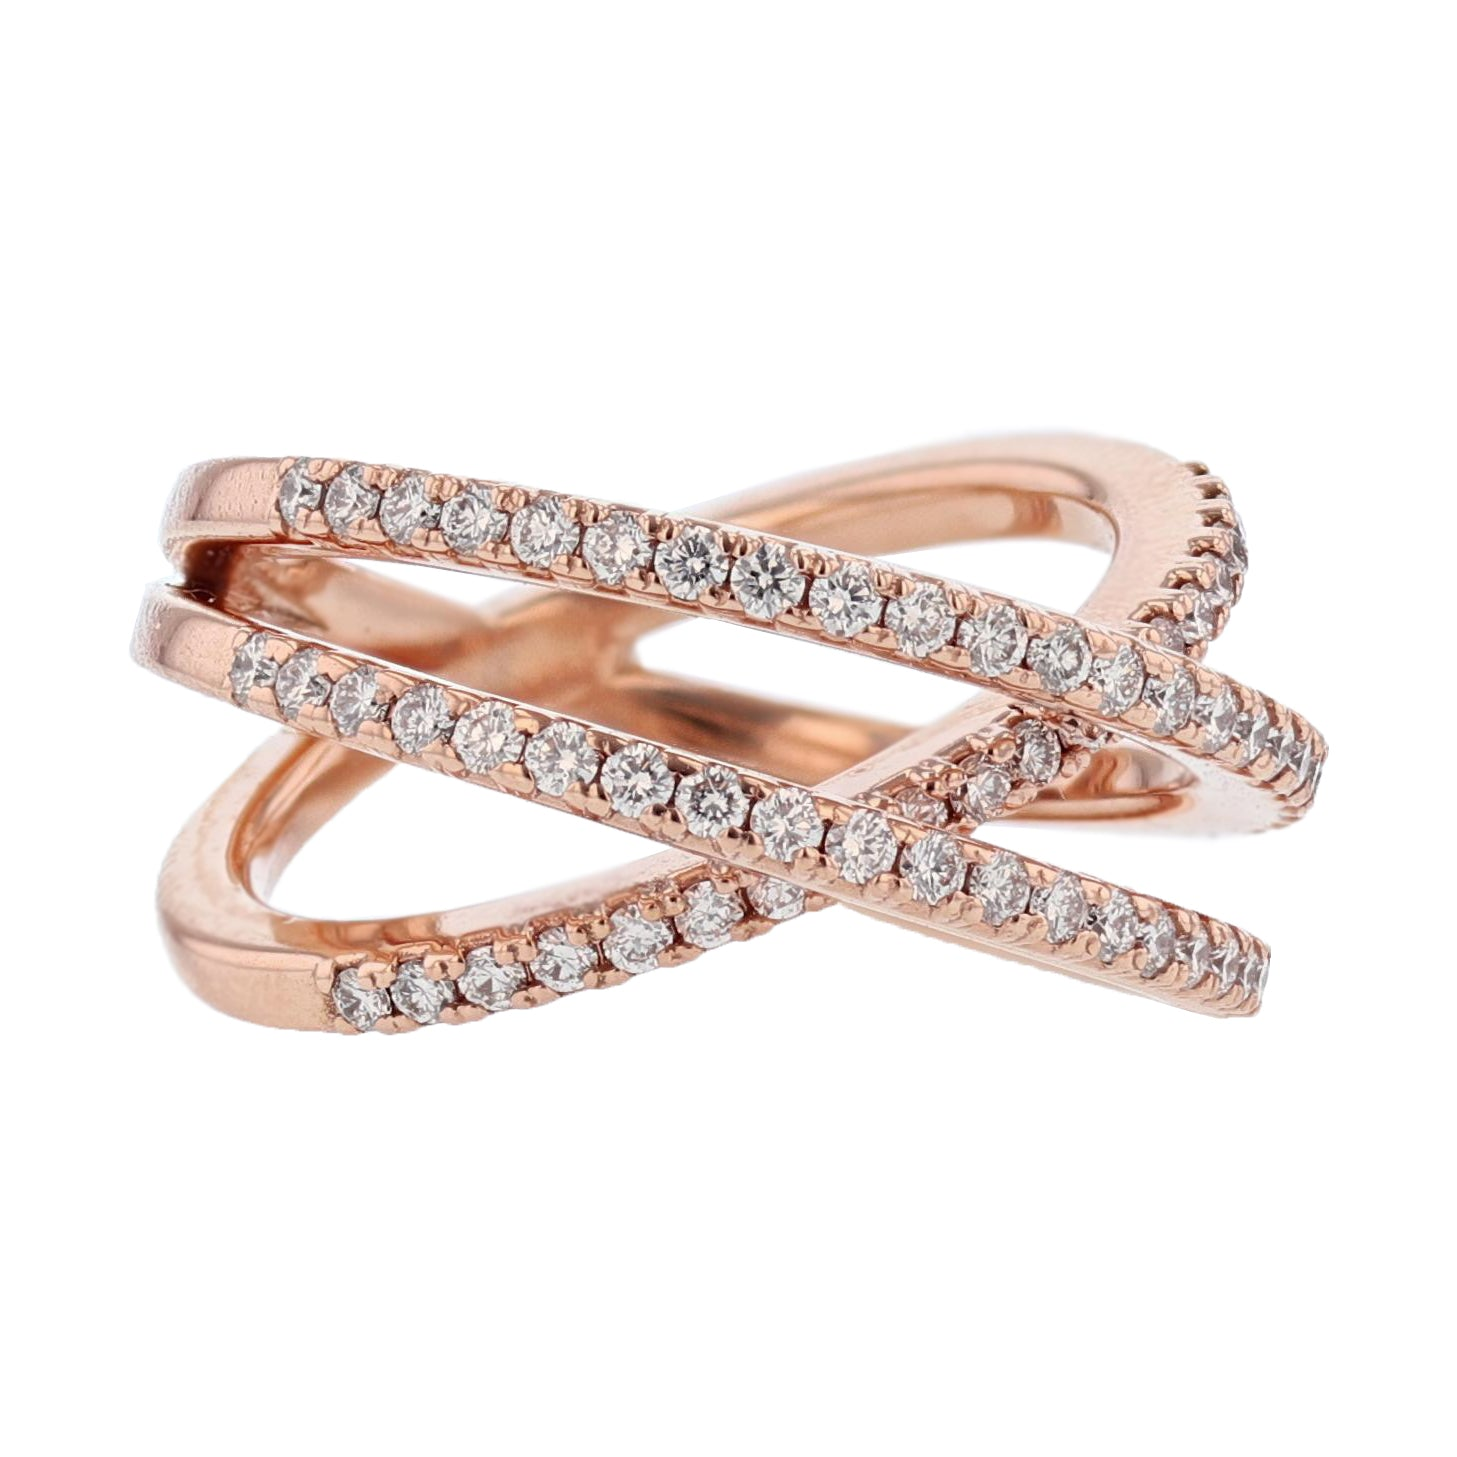 14K Rose Gold Diamond Criss Cross Ring - Nazarelle